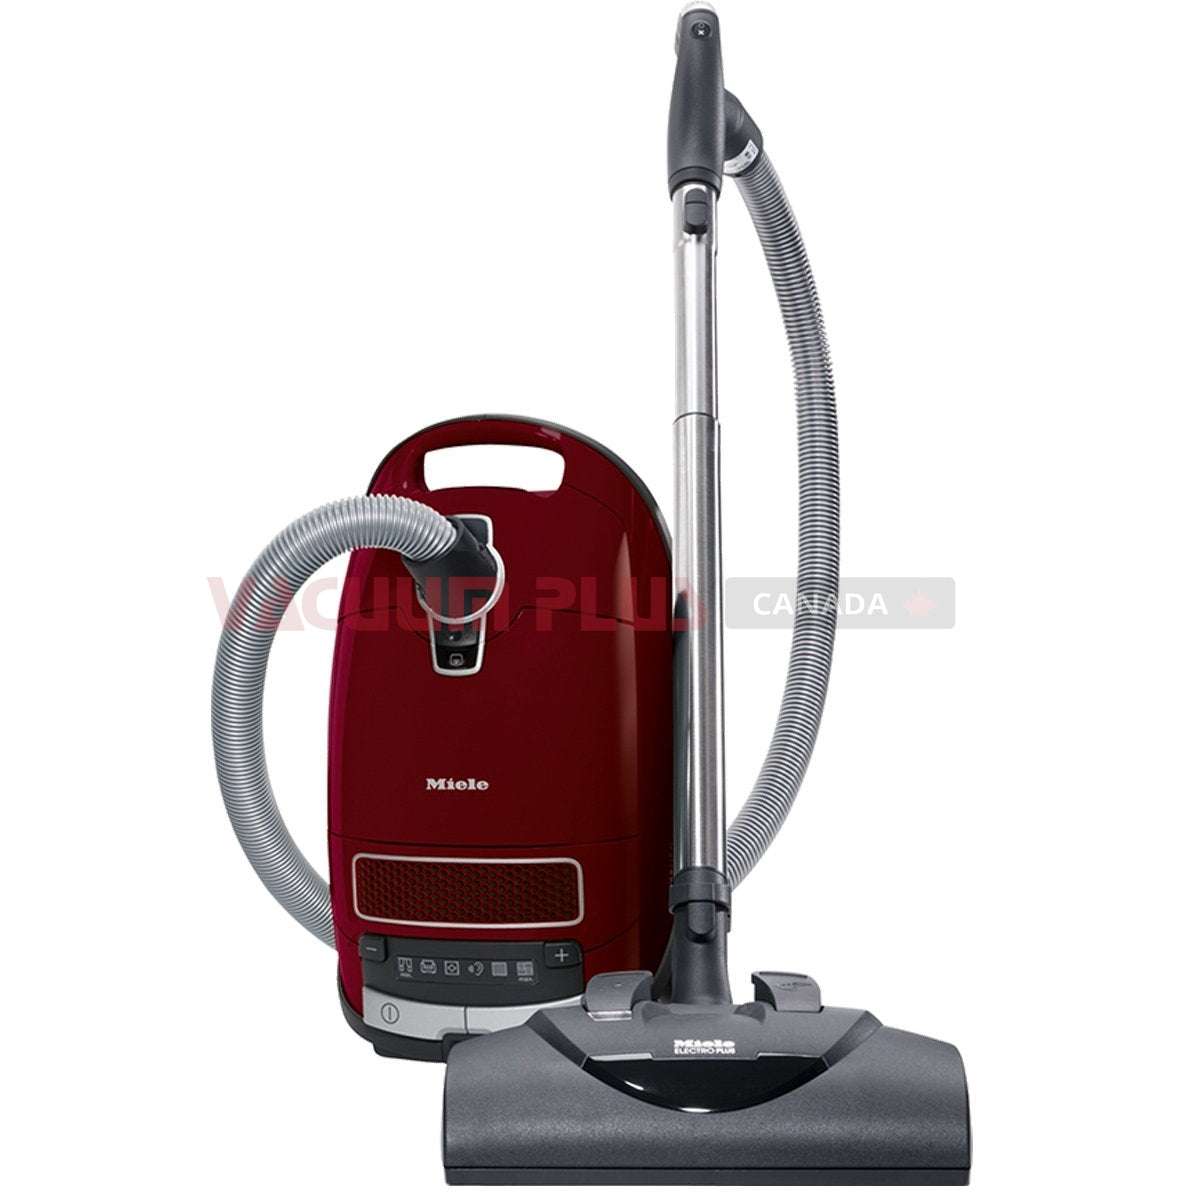 miele c3 cat and dog canister vacuum - Canister Vacuum Reviews